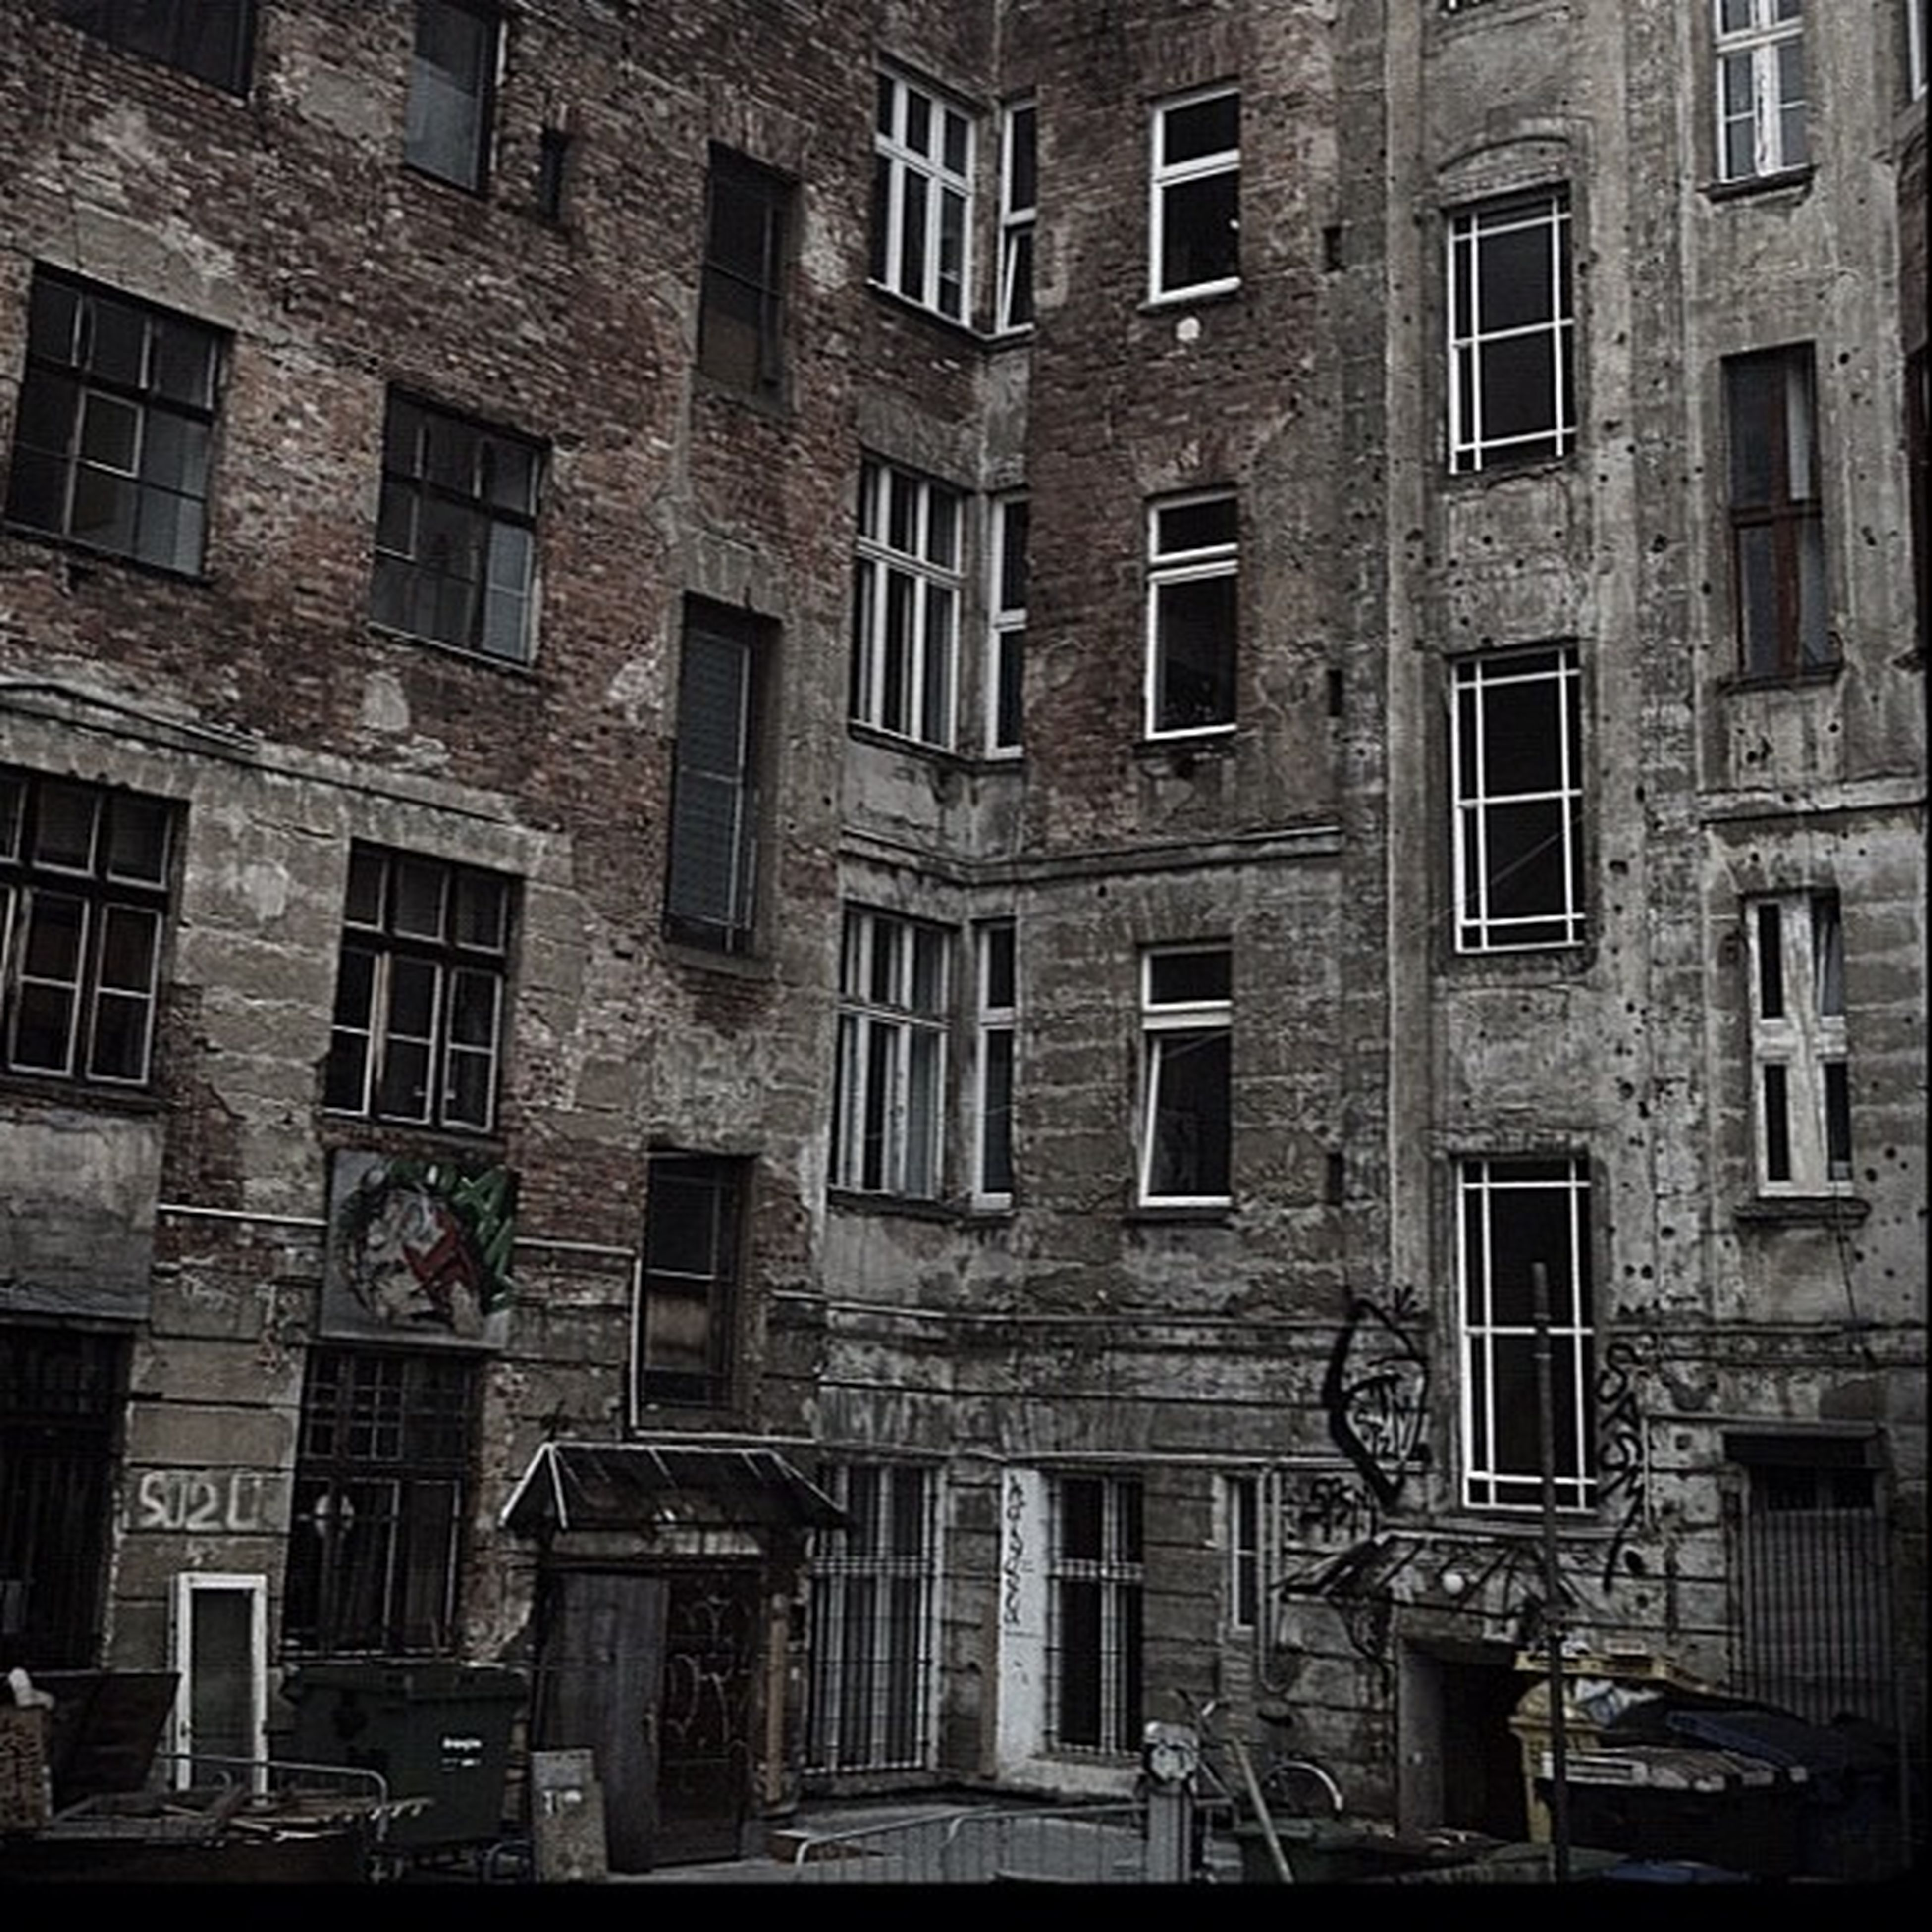 architecture, building exterior, built structure, window, building, residential building, residential structure, city, old, day, outdoors, no people, in a row, full frame, abandoned, balcony, damaged, apartment, transportation, weathered